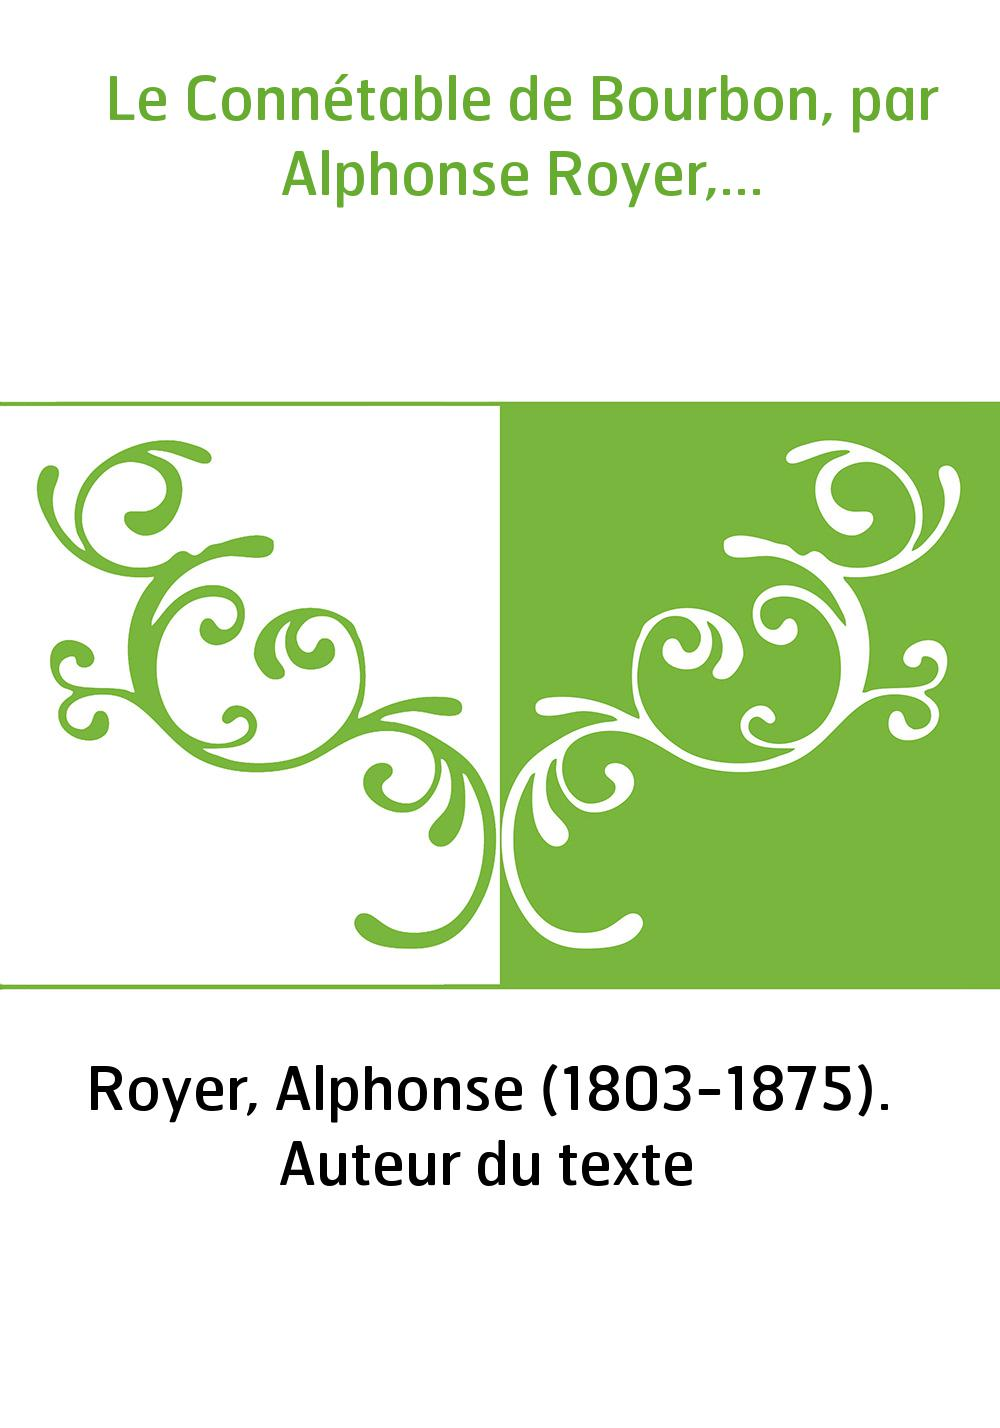 Le Connétable de Bourbon, par Alphonse Royer,...